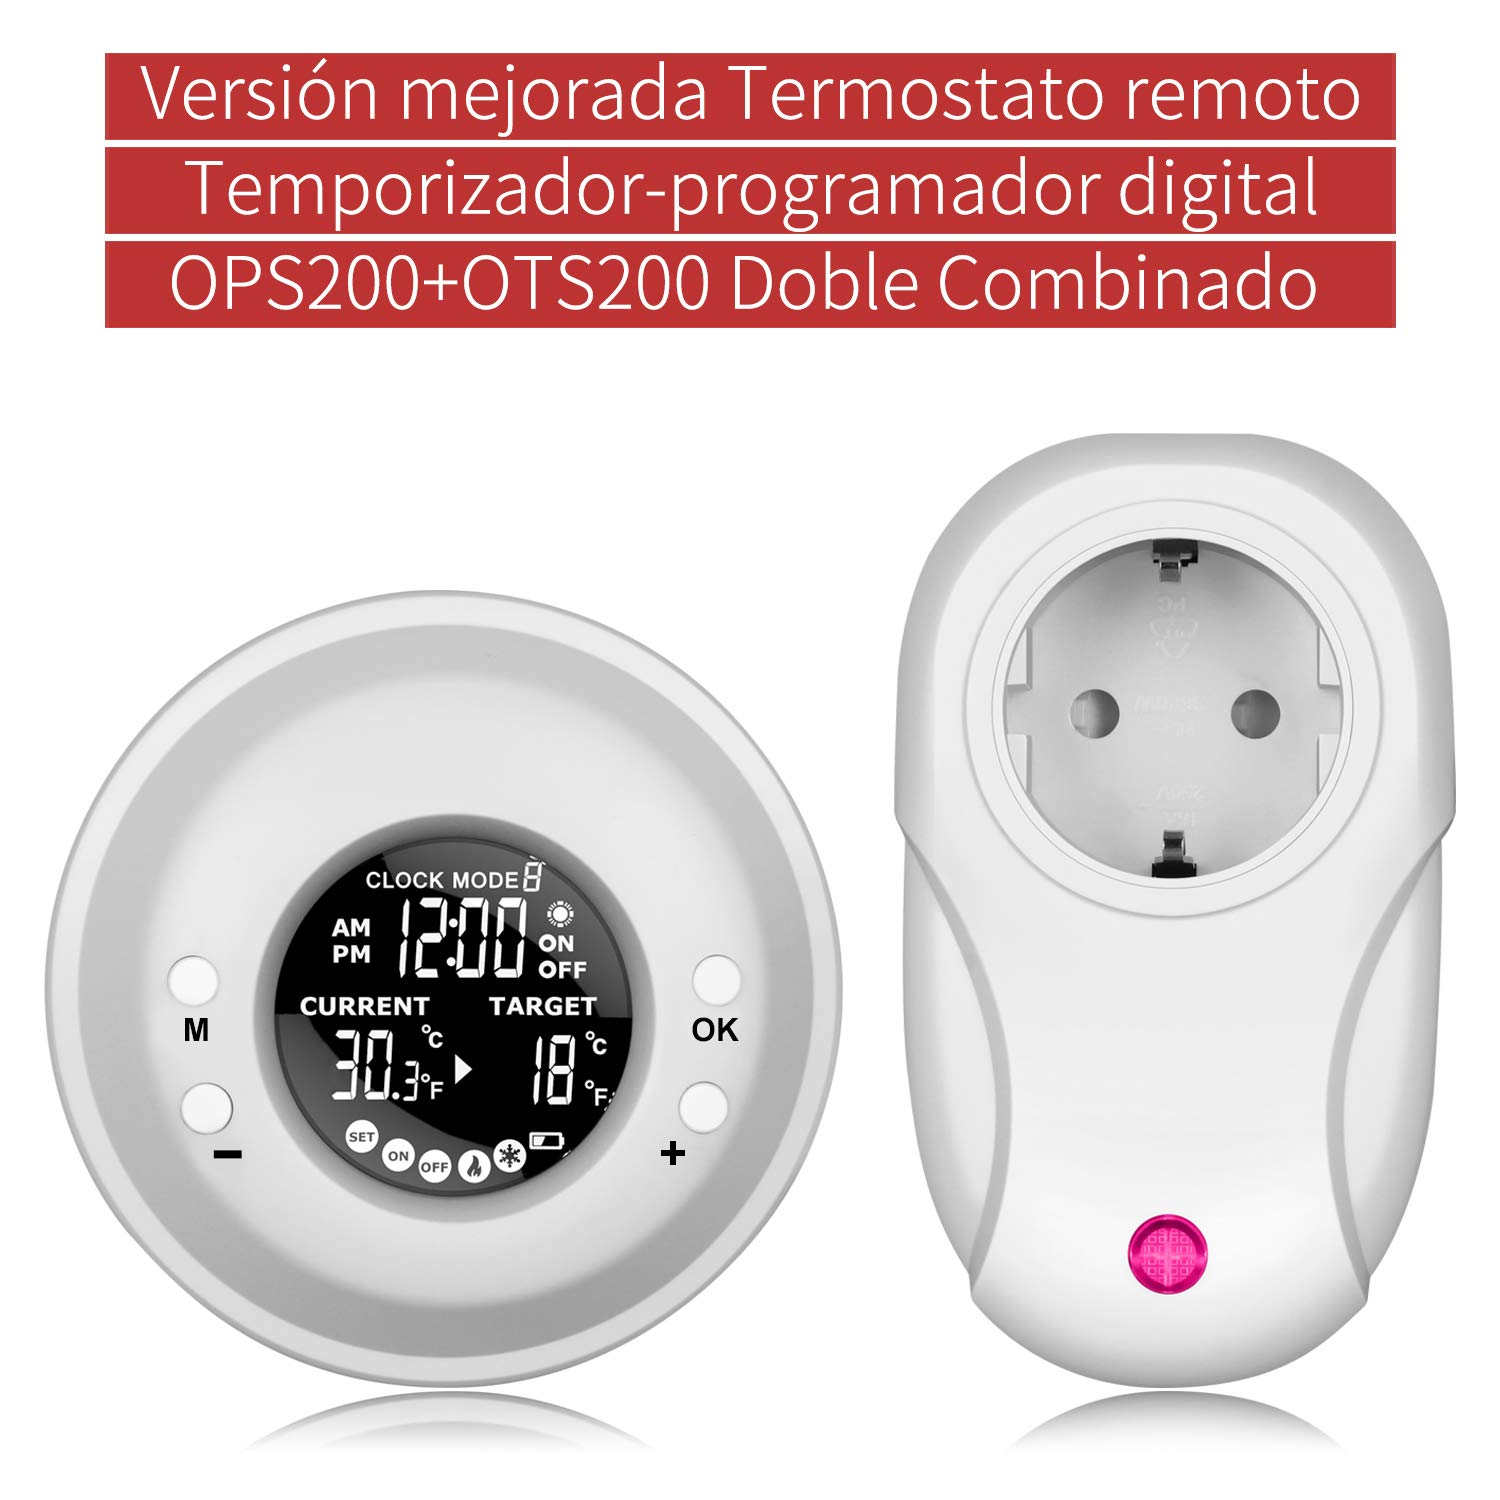 Temporizador Digital Programable, UPPEL Termostato Programable Inalámbrico Temporizador digital de temperatura adaptador Enchufe EU Programador ...